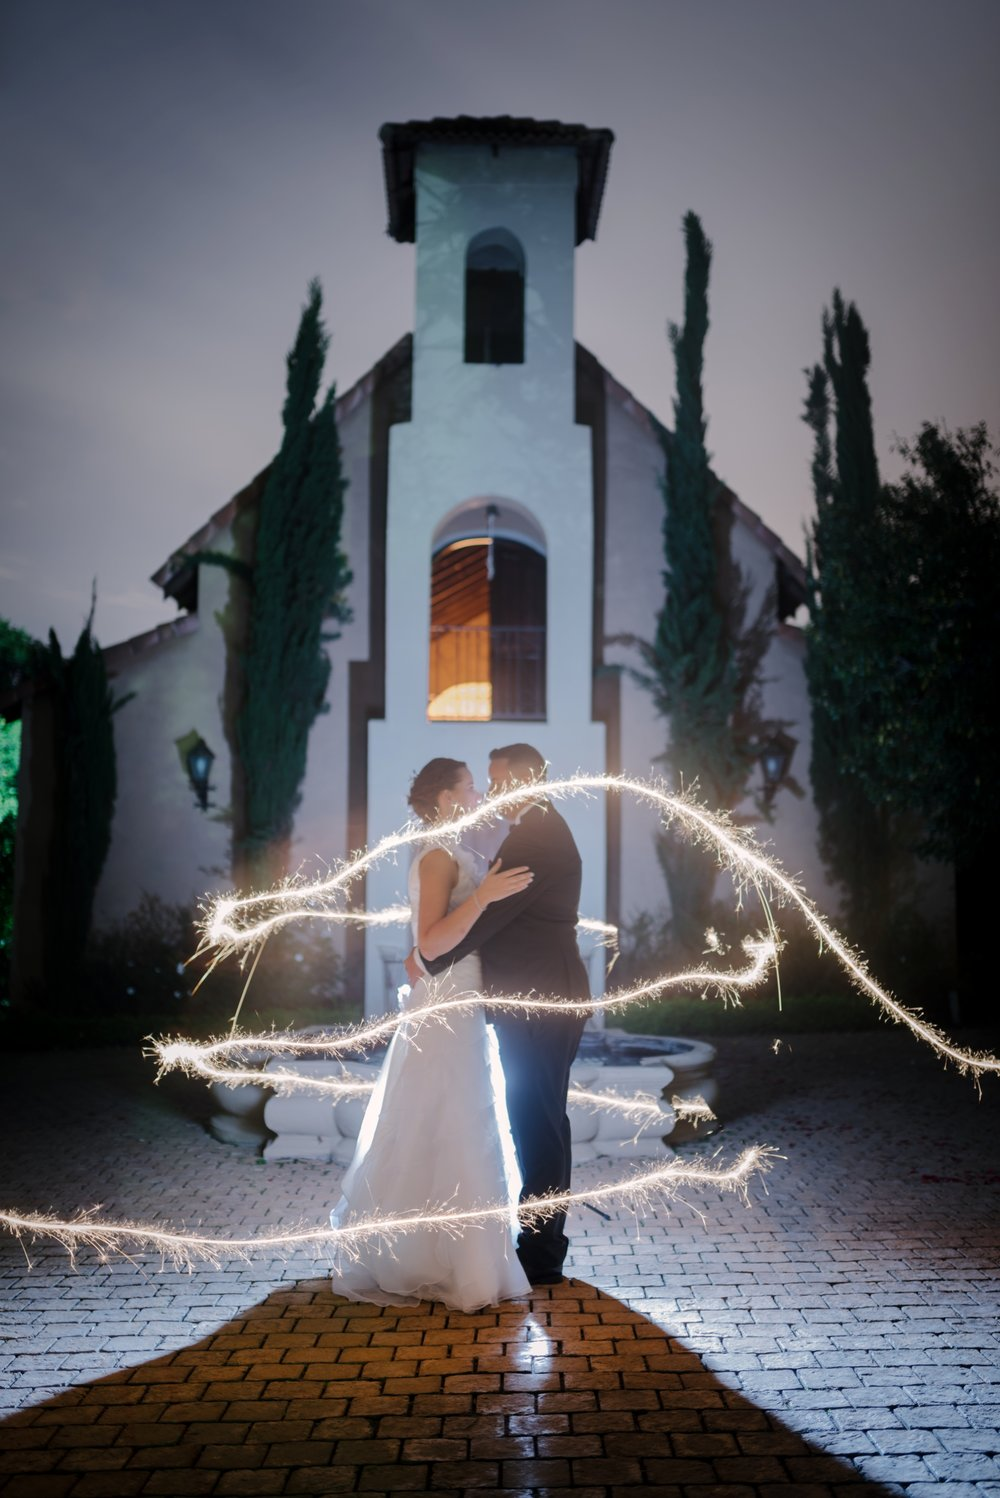 wedding photography, The Moon and Sixpense, wedding photos, beautiful bride, exquisite wedding, sparkler, night photo